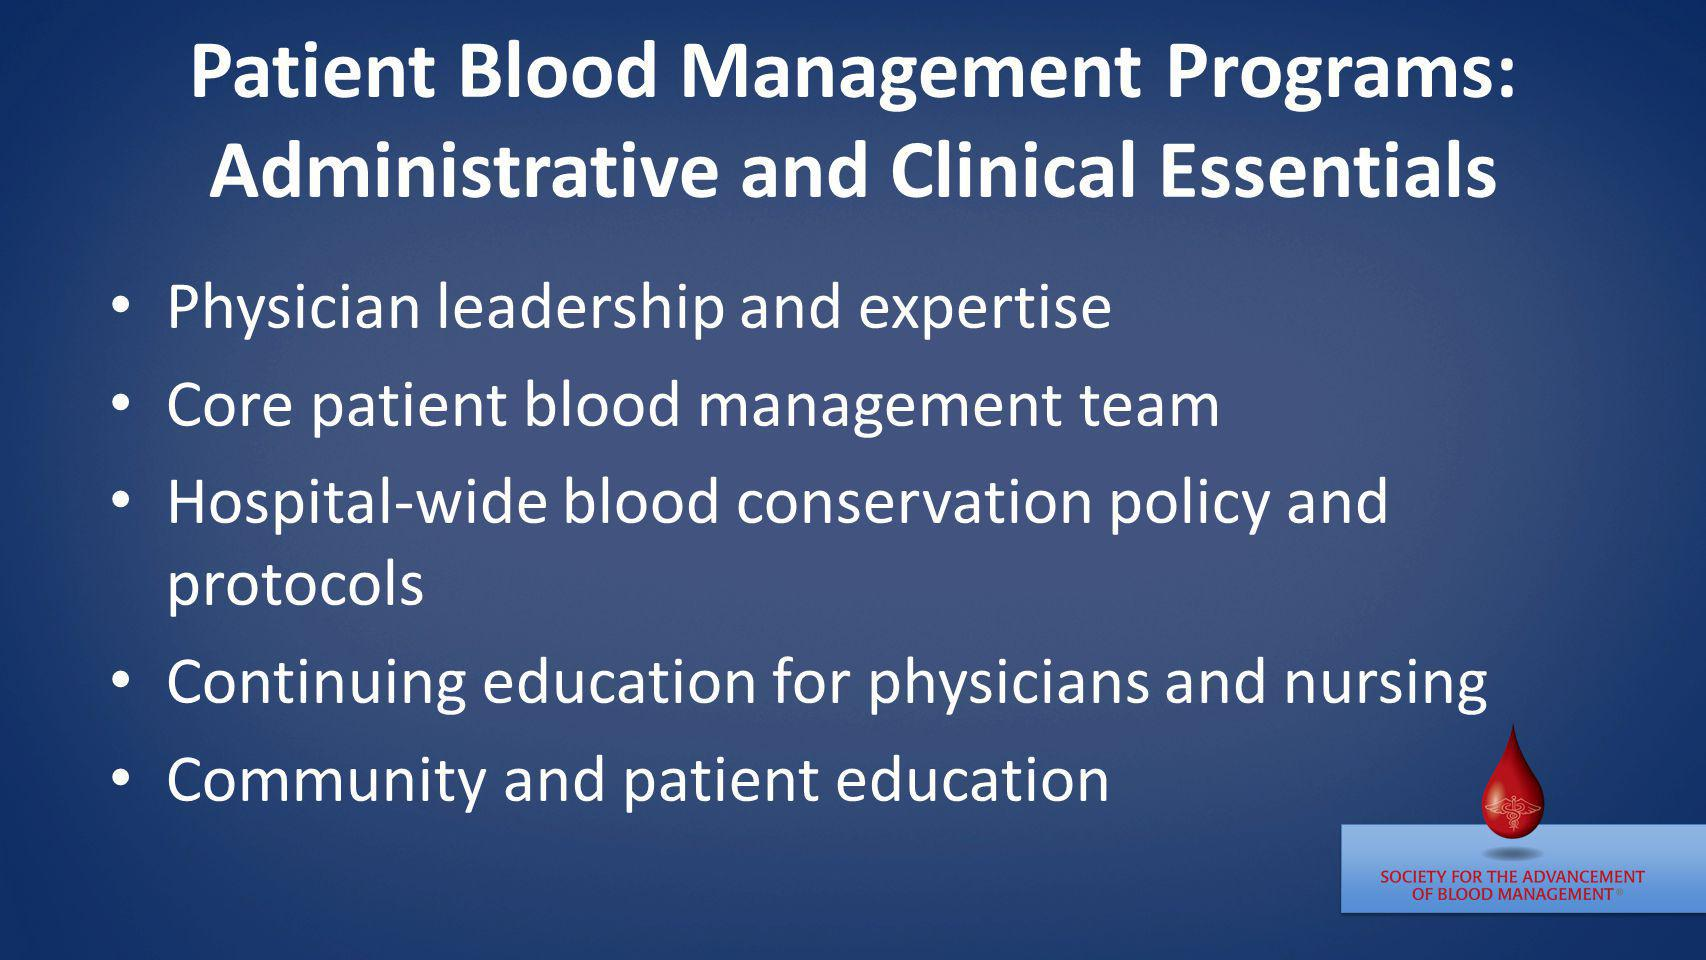 Patient Blood Management Programs: Administrative and Clinical Essentials